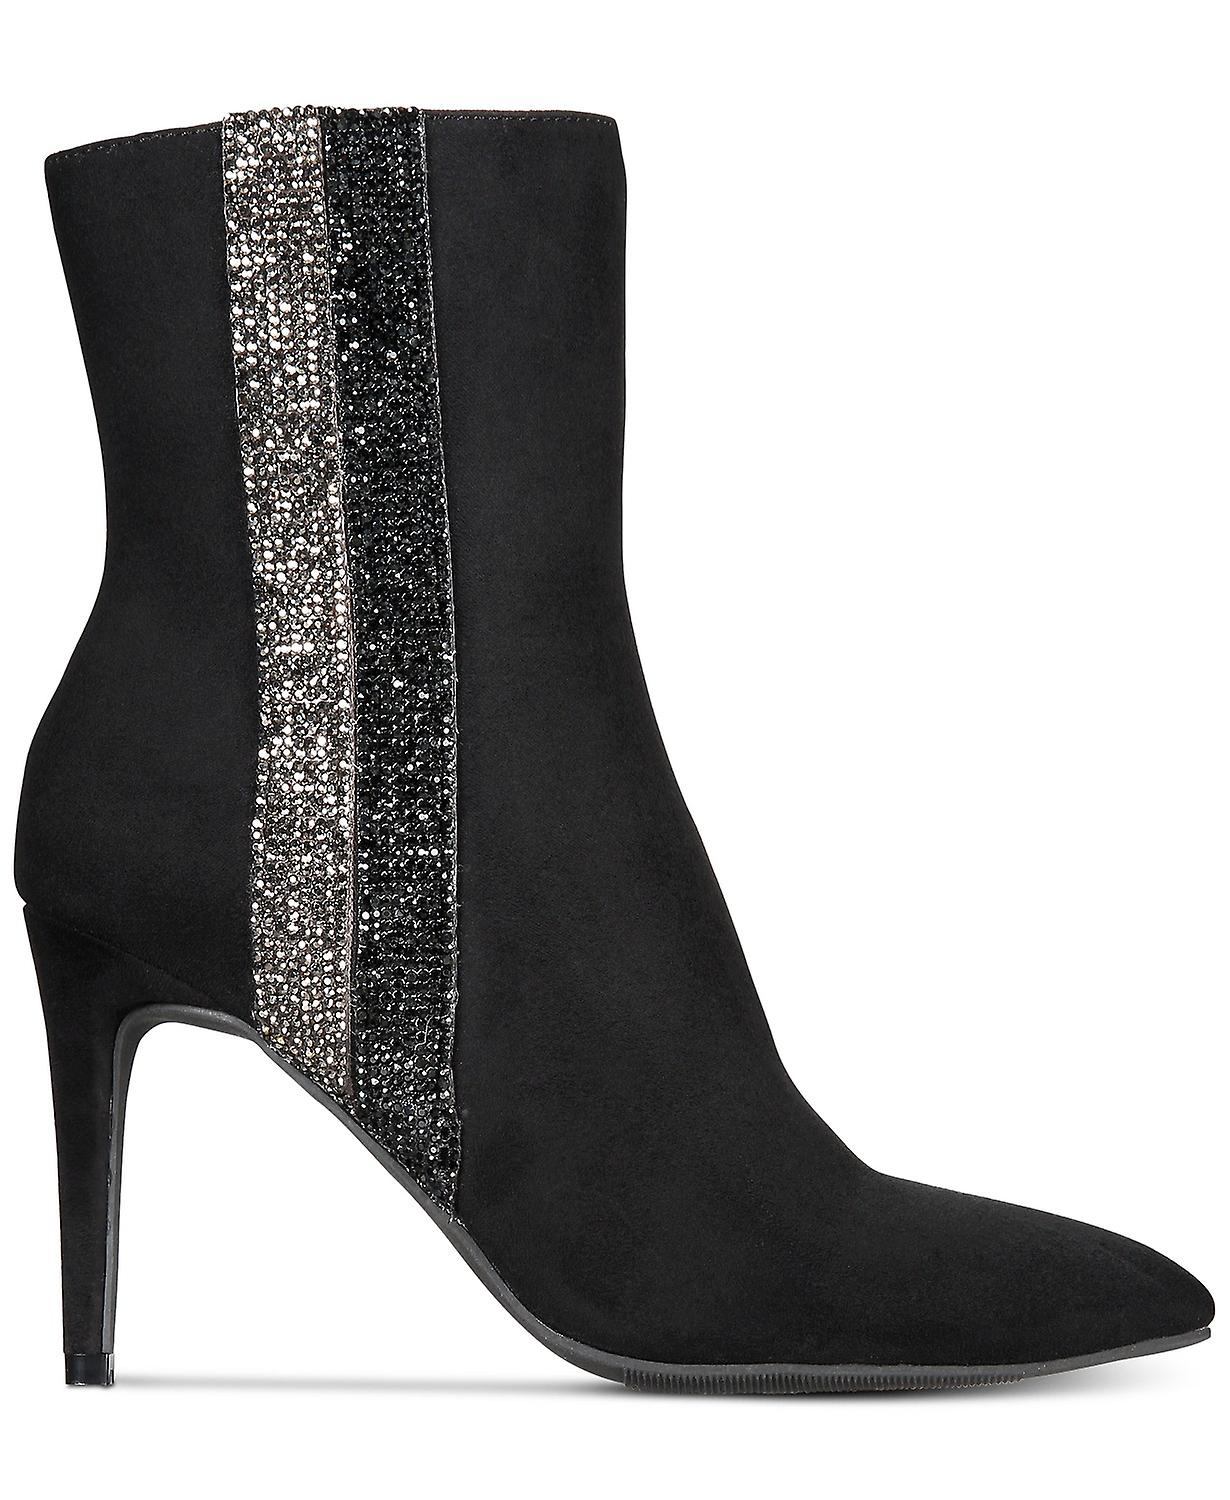 Material Girl Womens Phebe Fabric Pointed Toe Ankle Fashion Boots